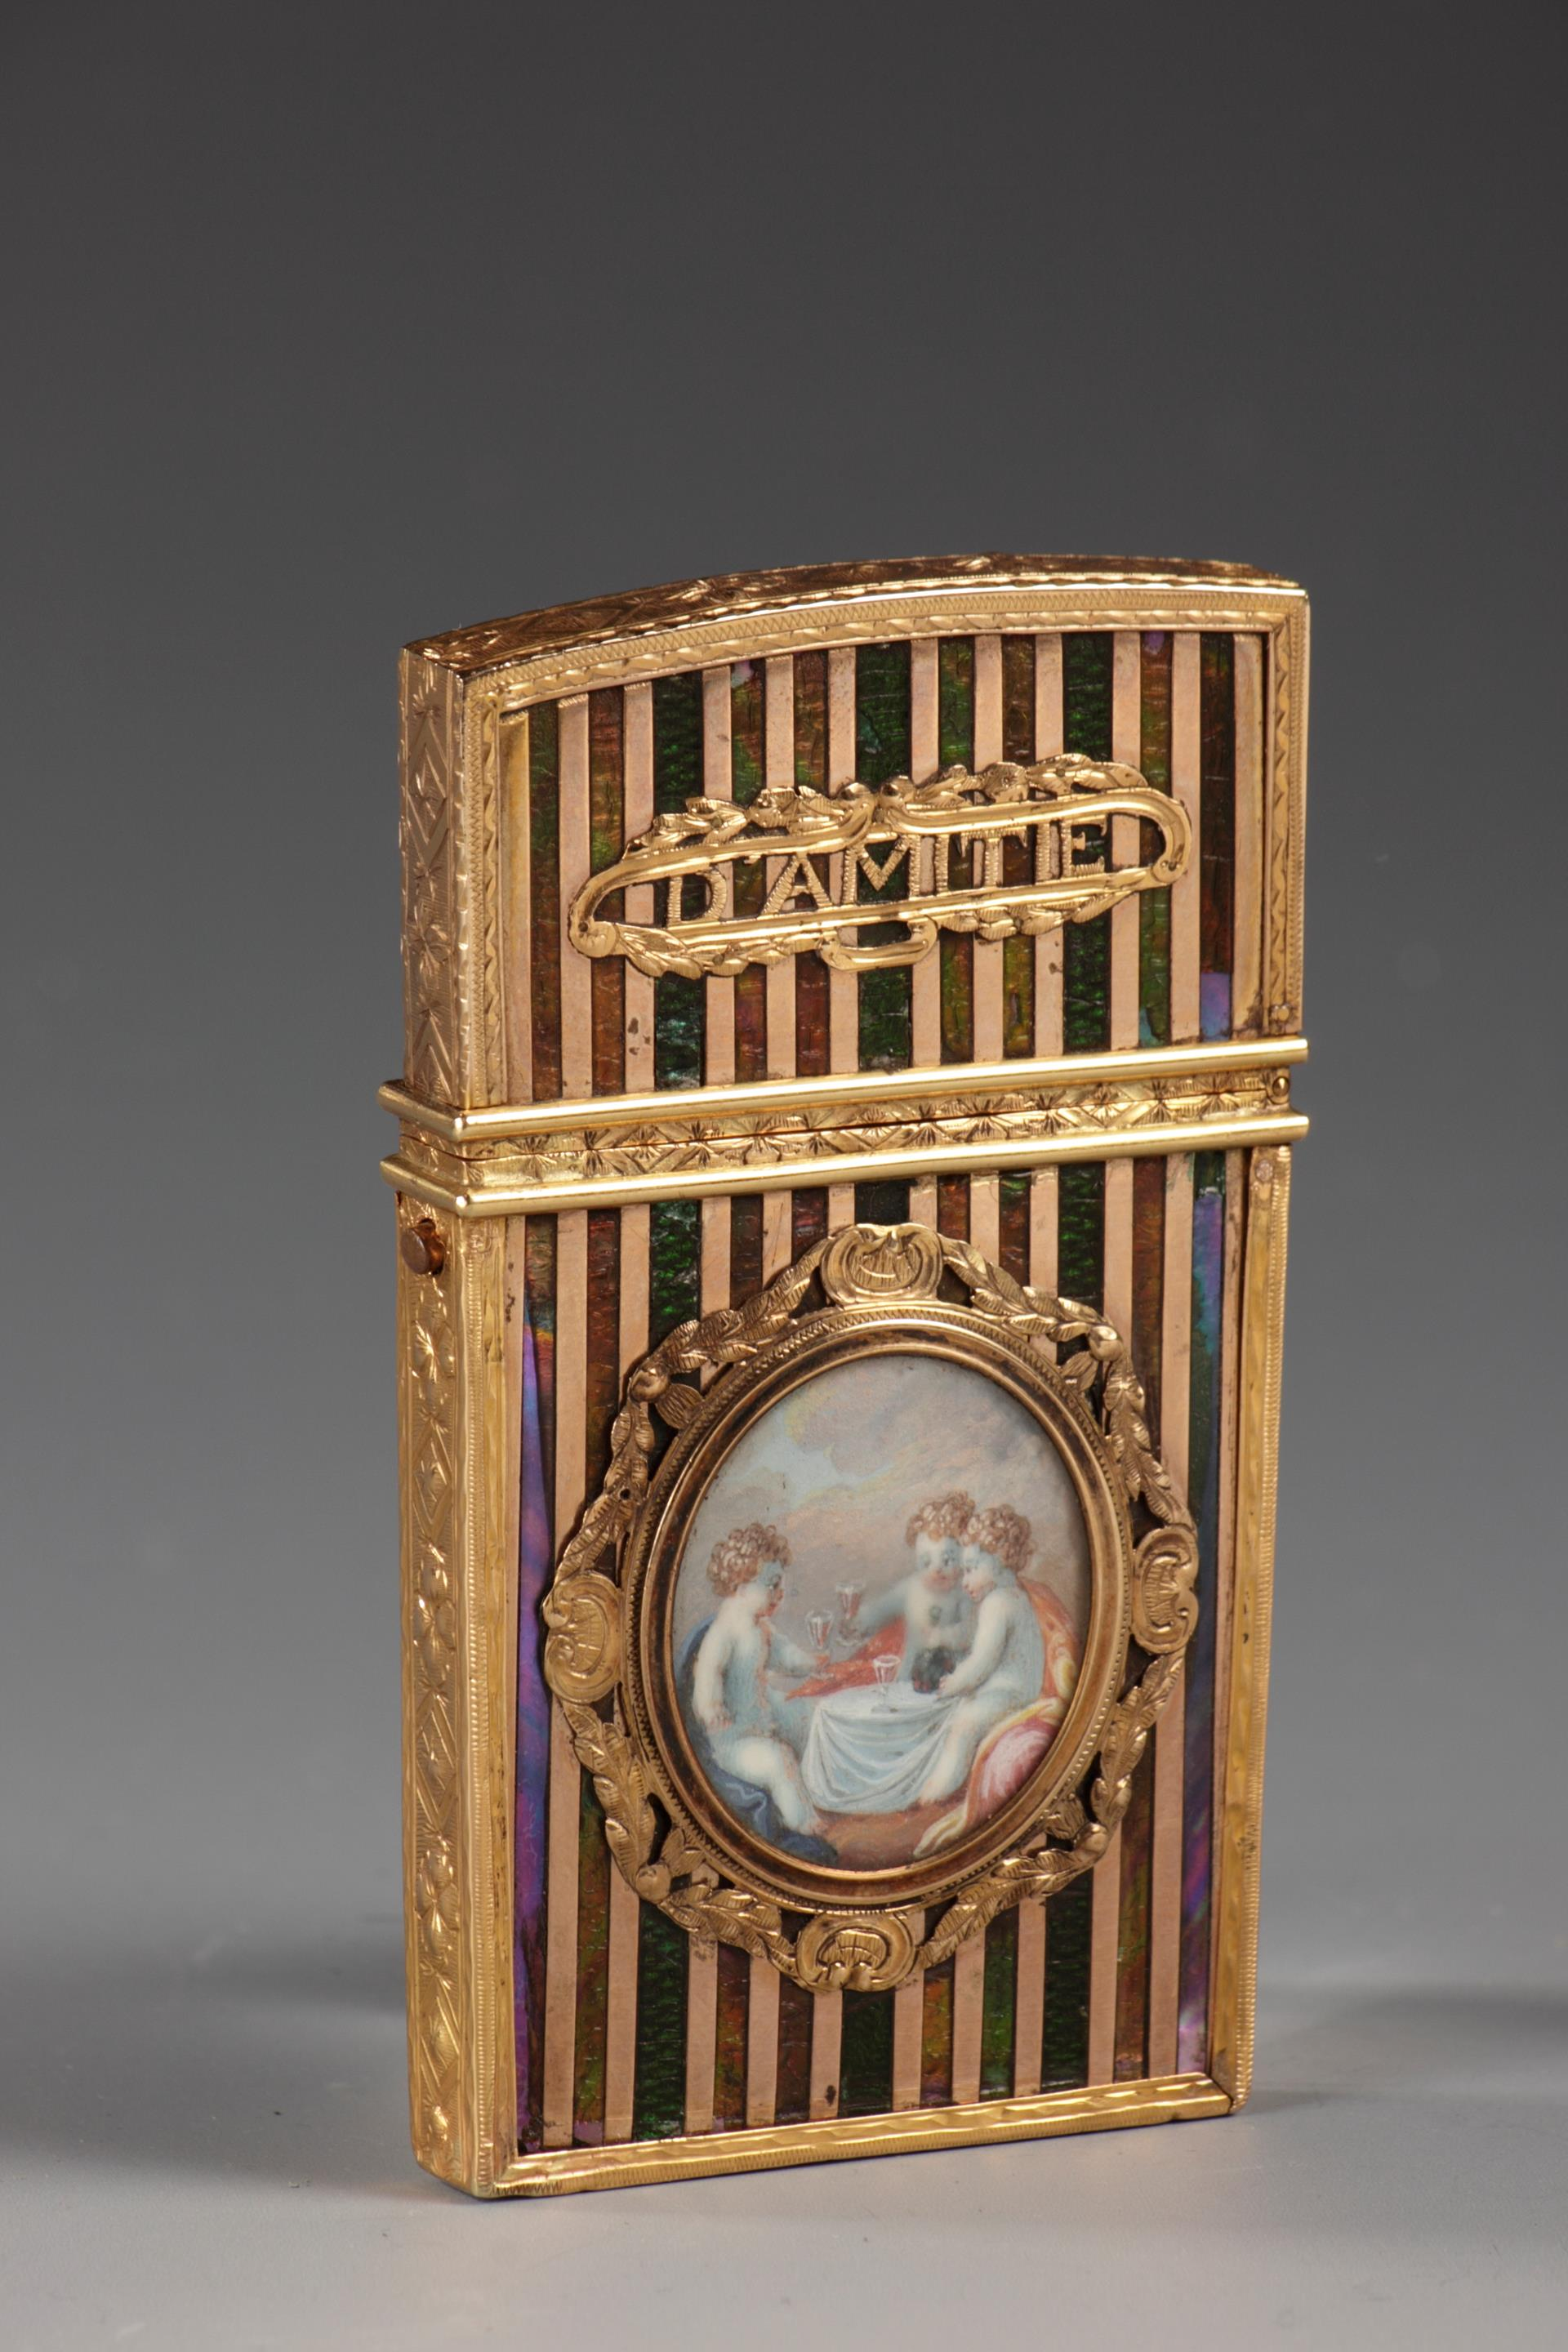 GOLD PANEL AND VERNIS MARTIN WRITING CASE.<br/> FRENCH CRAFTSMANSHIP, LOUIS XV PERIOD.